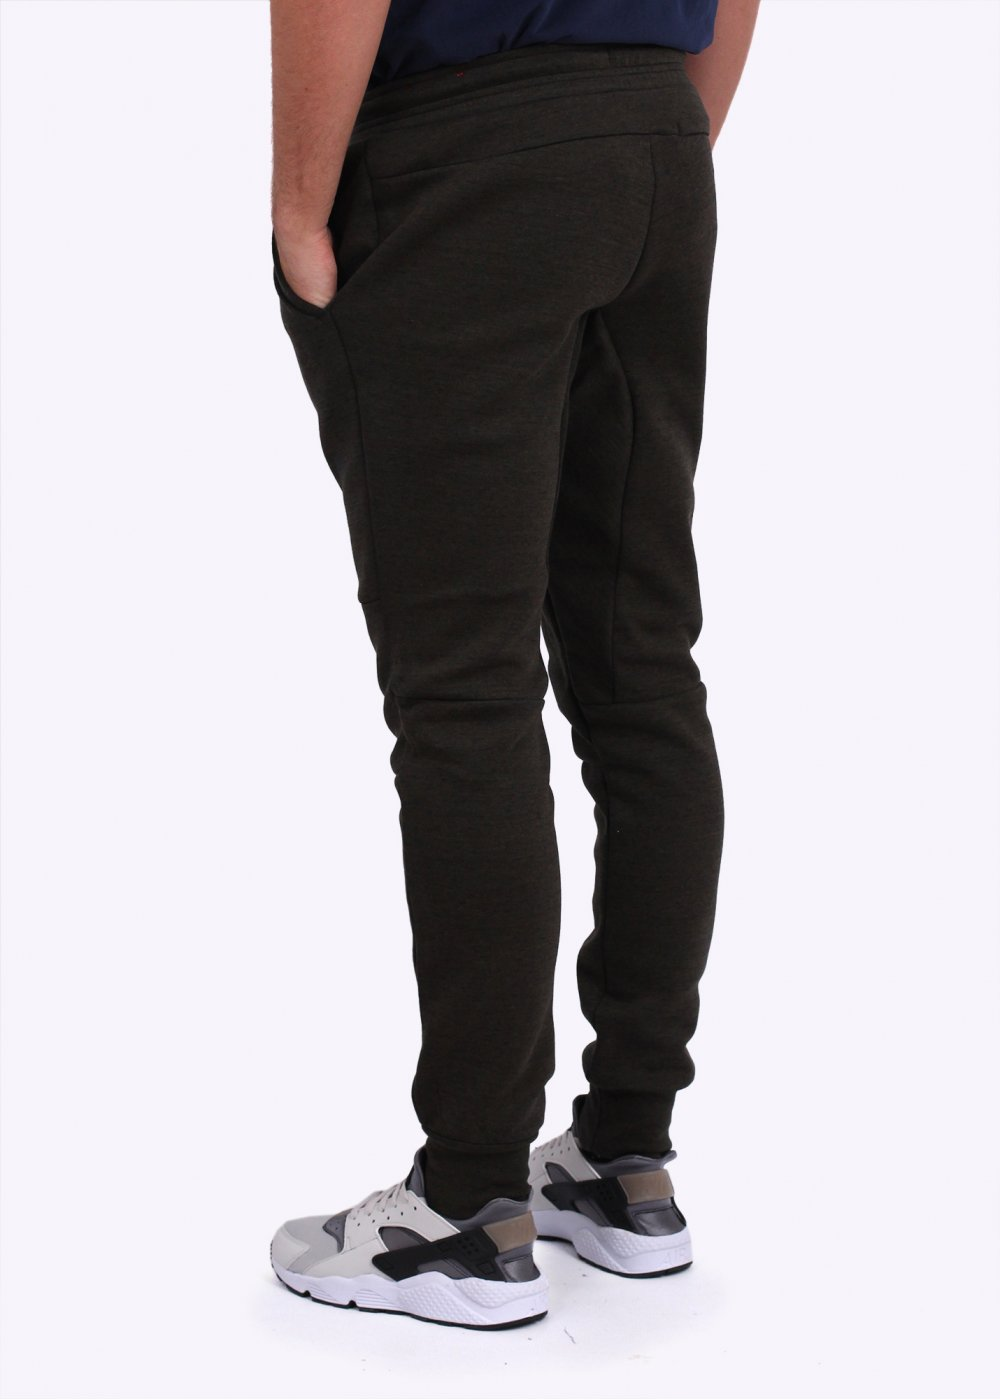 65192fa6cf36 Nike Tech Fleece Pant - Dark Green